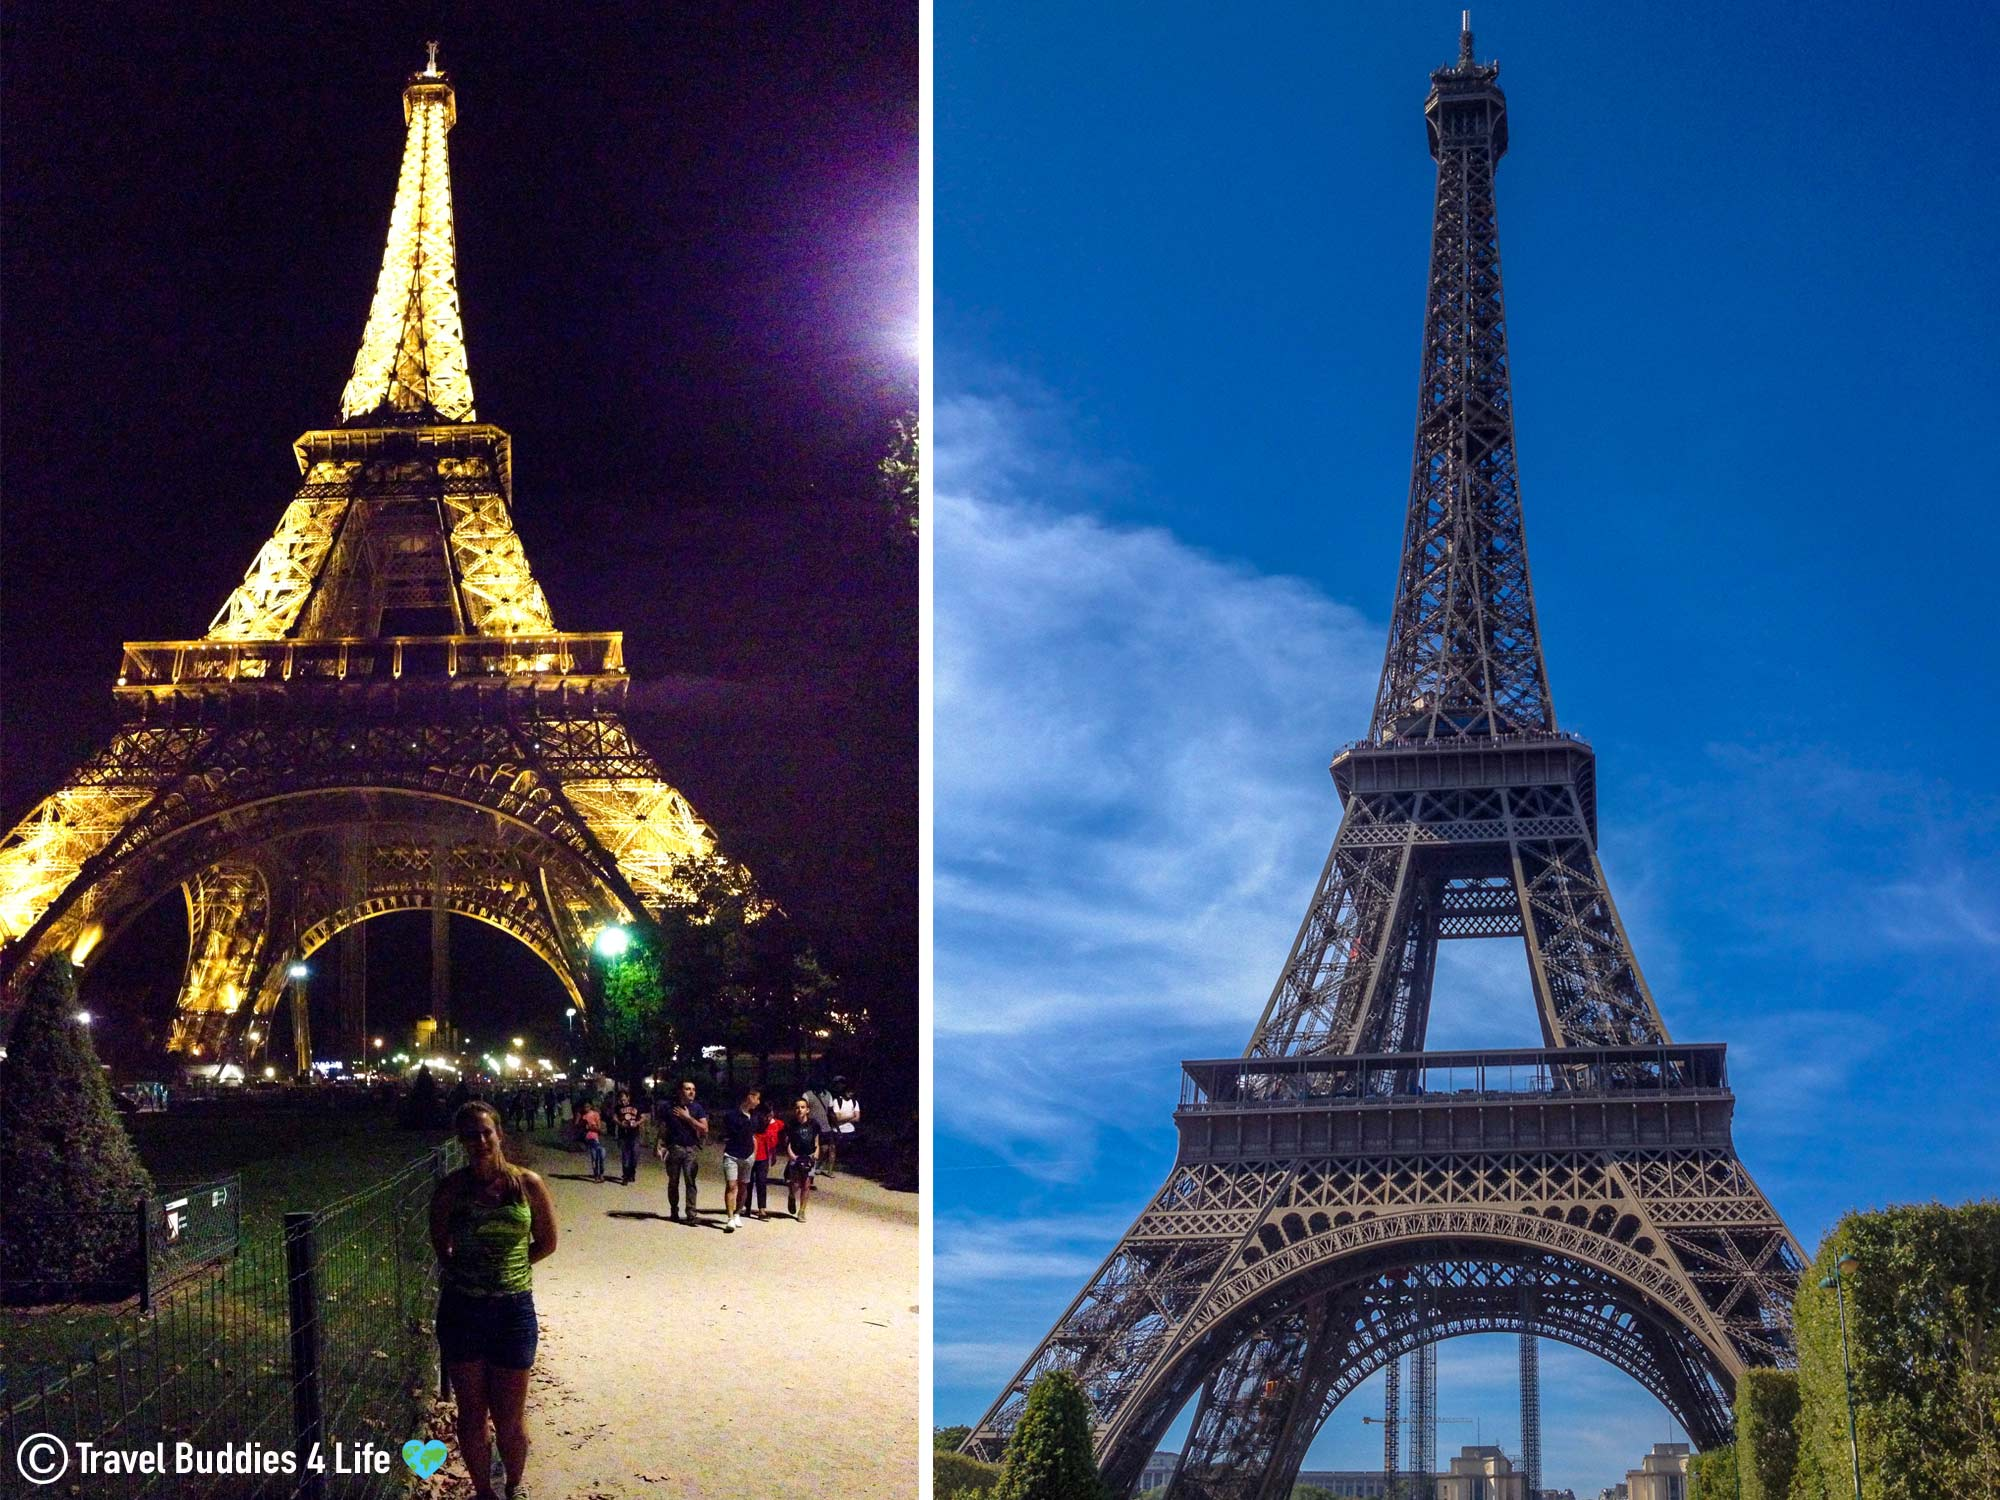 Day And Nighttime Versions Of The Eiffel Tower In Paris, France, European Monument